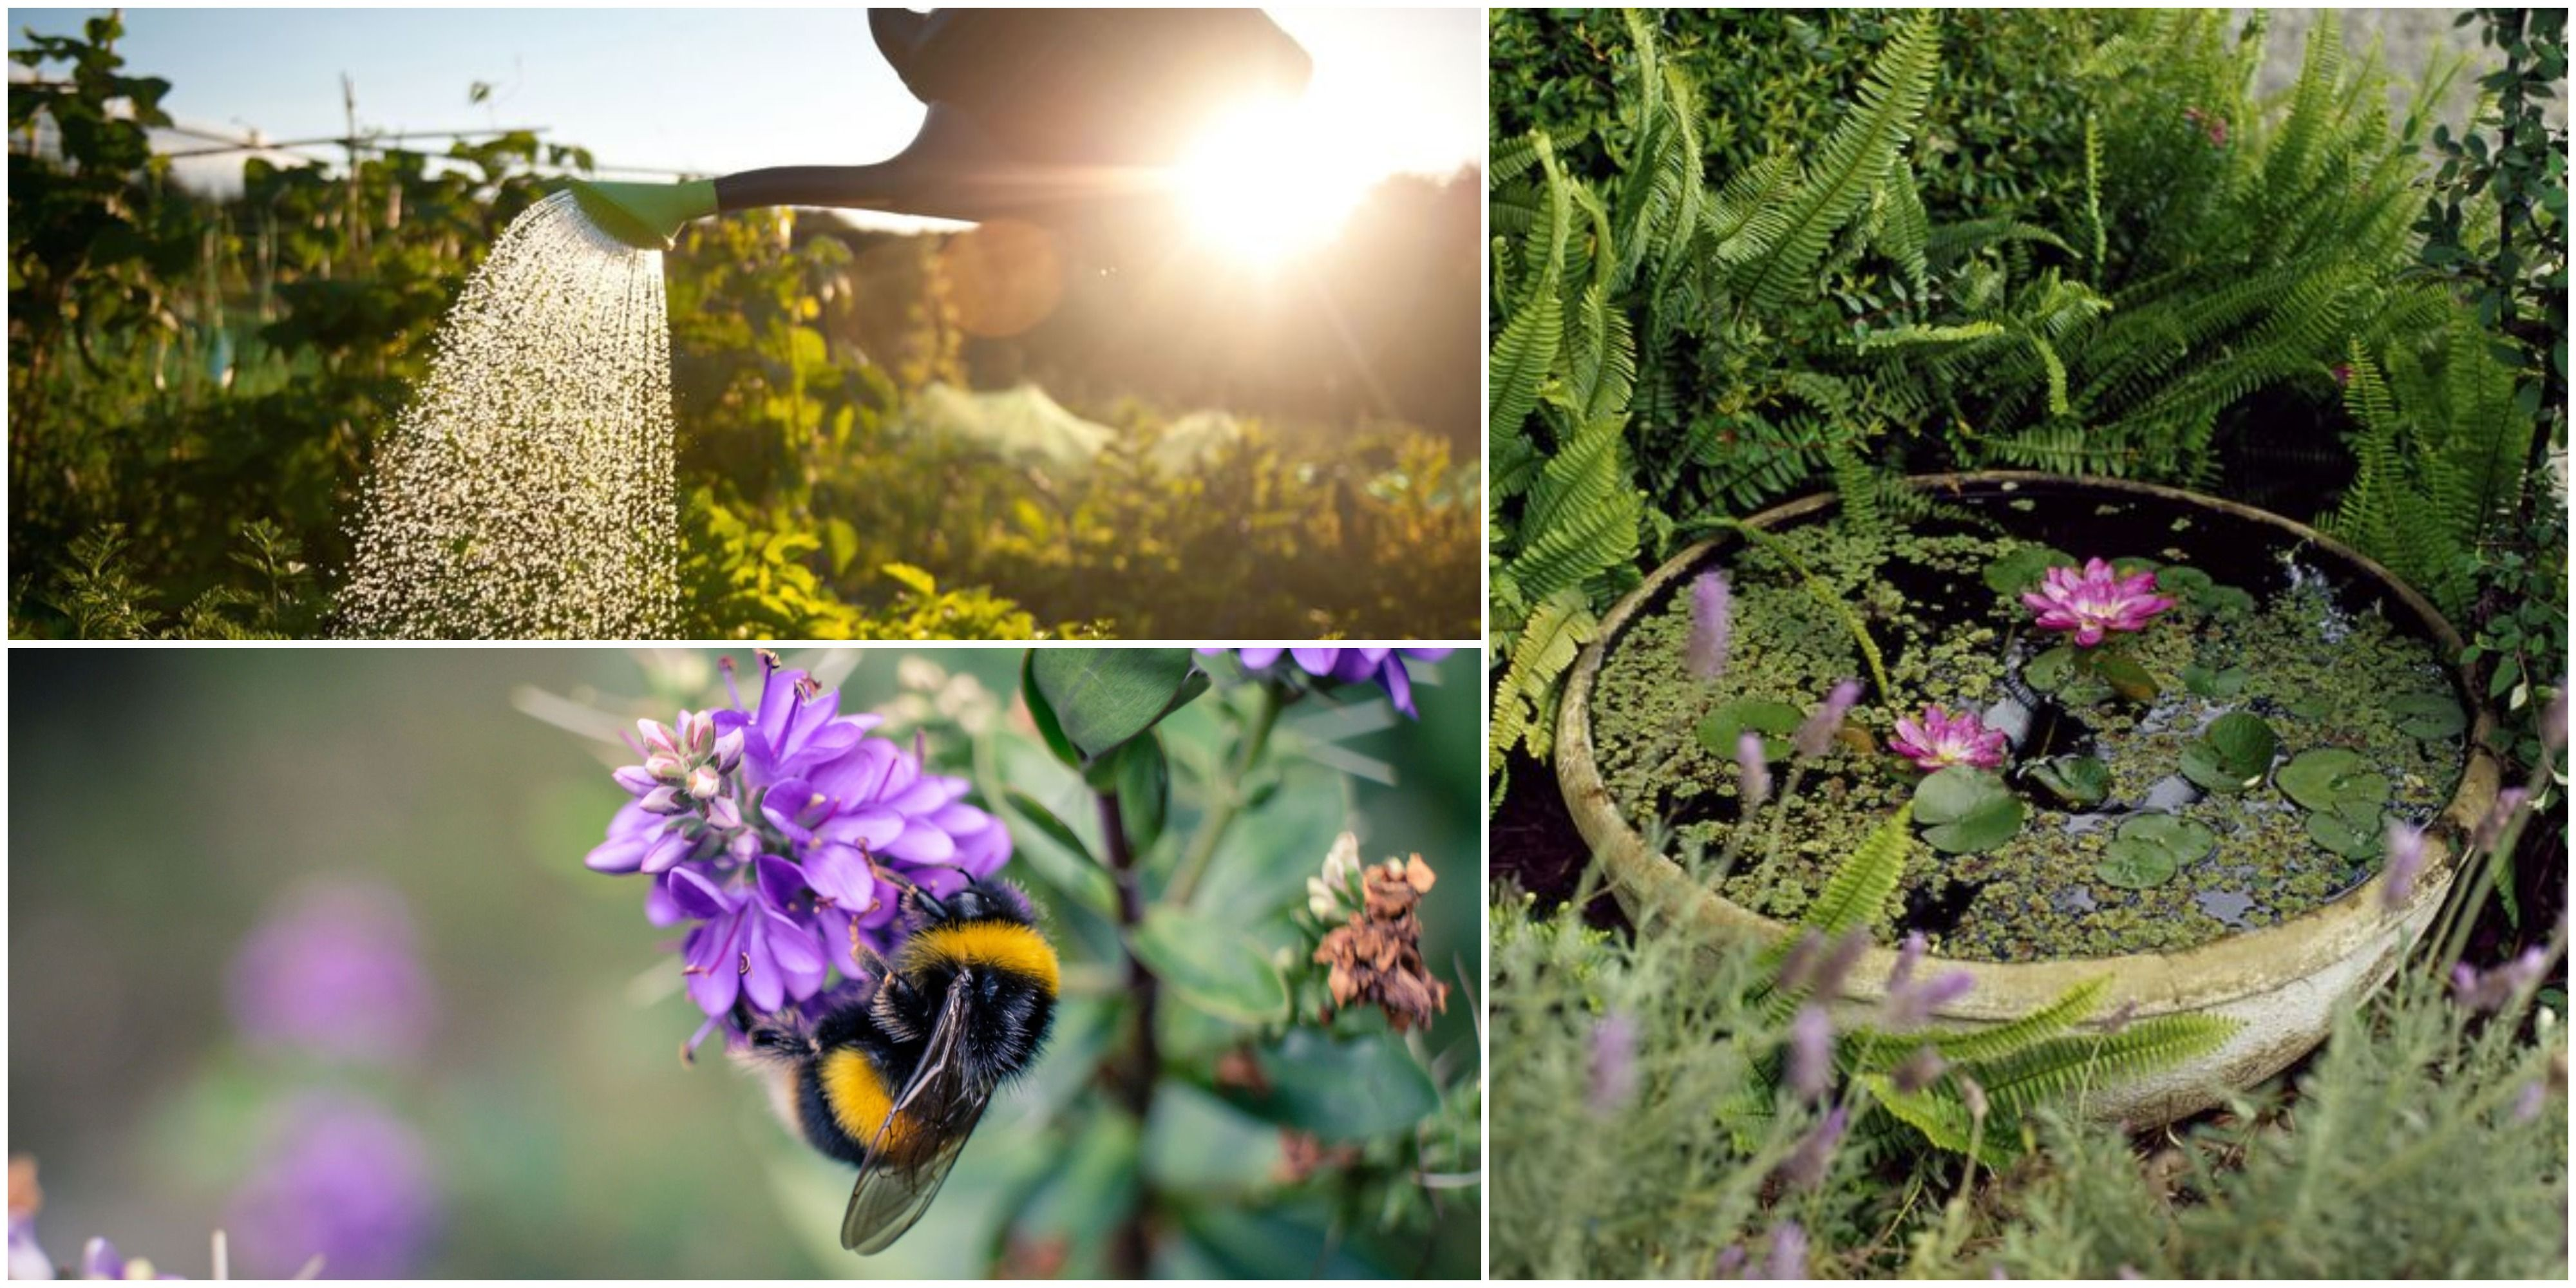 How To Care For Garden Wildlife During A Heatwave